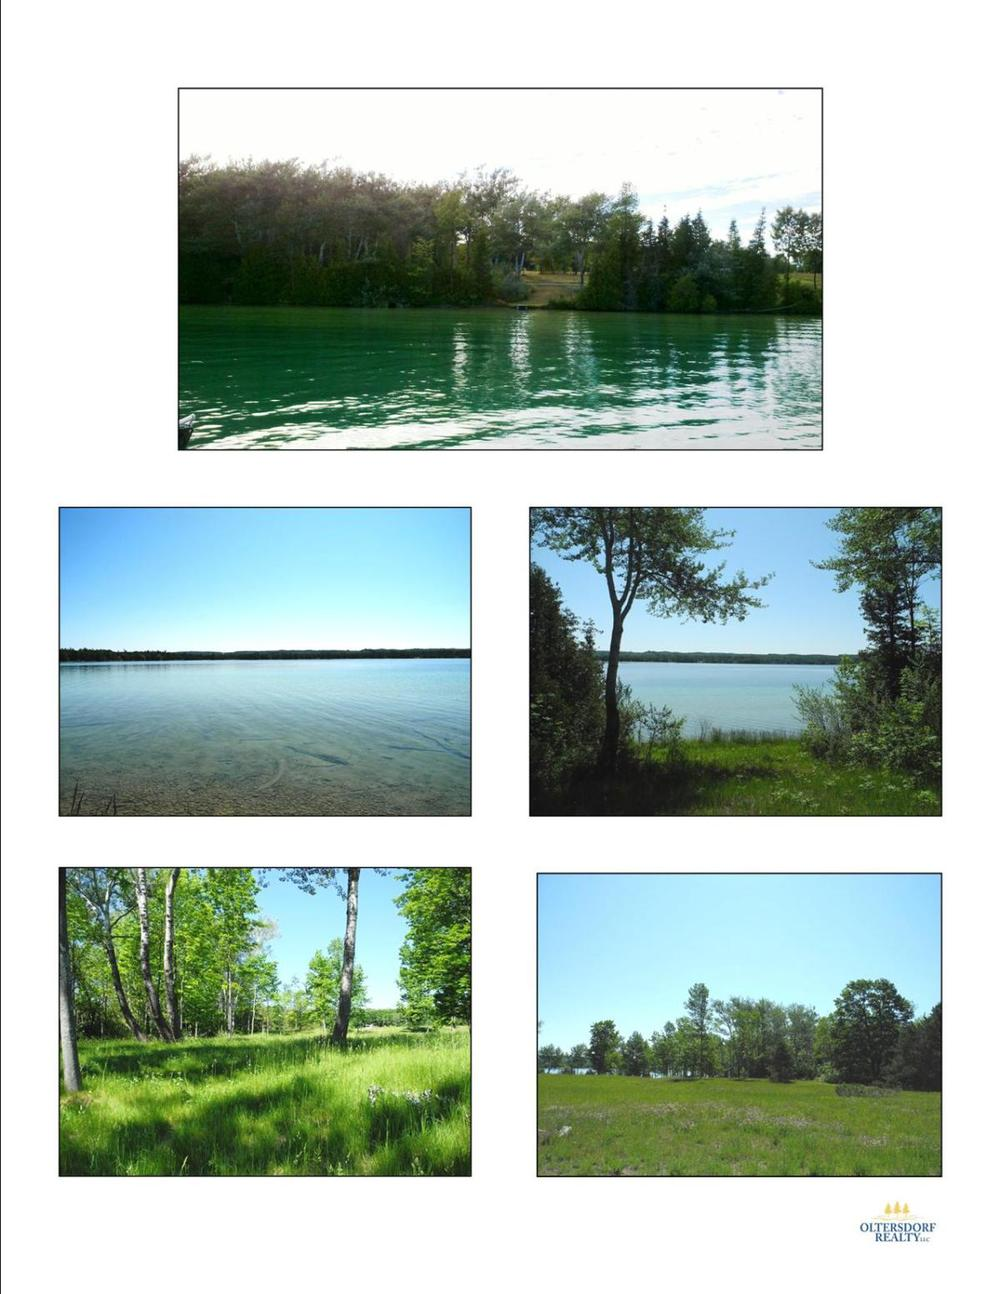 n manitou for sale - leland, lake leelanau, oltersdorf realty.jpg